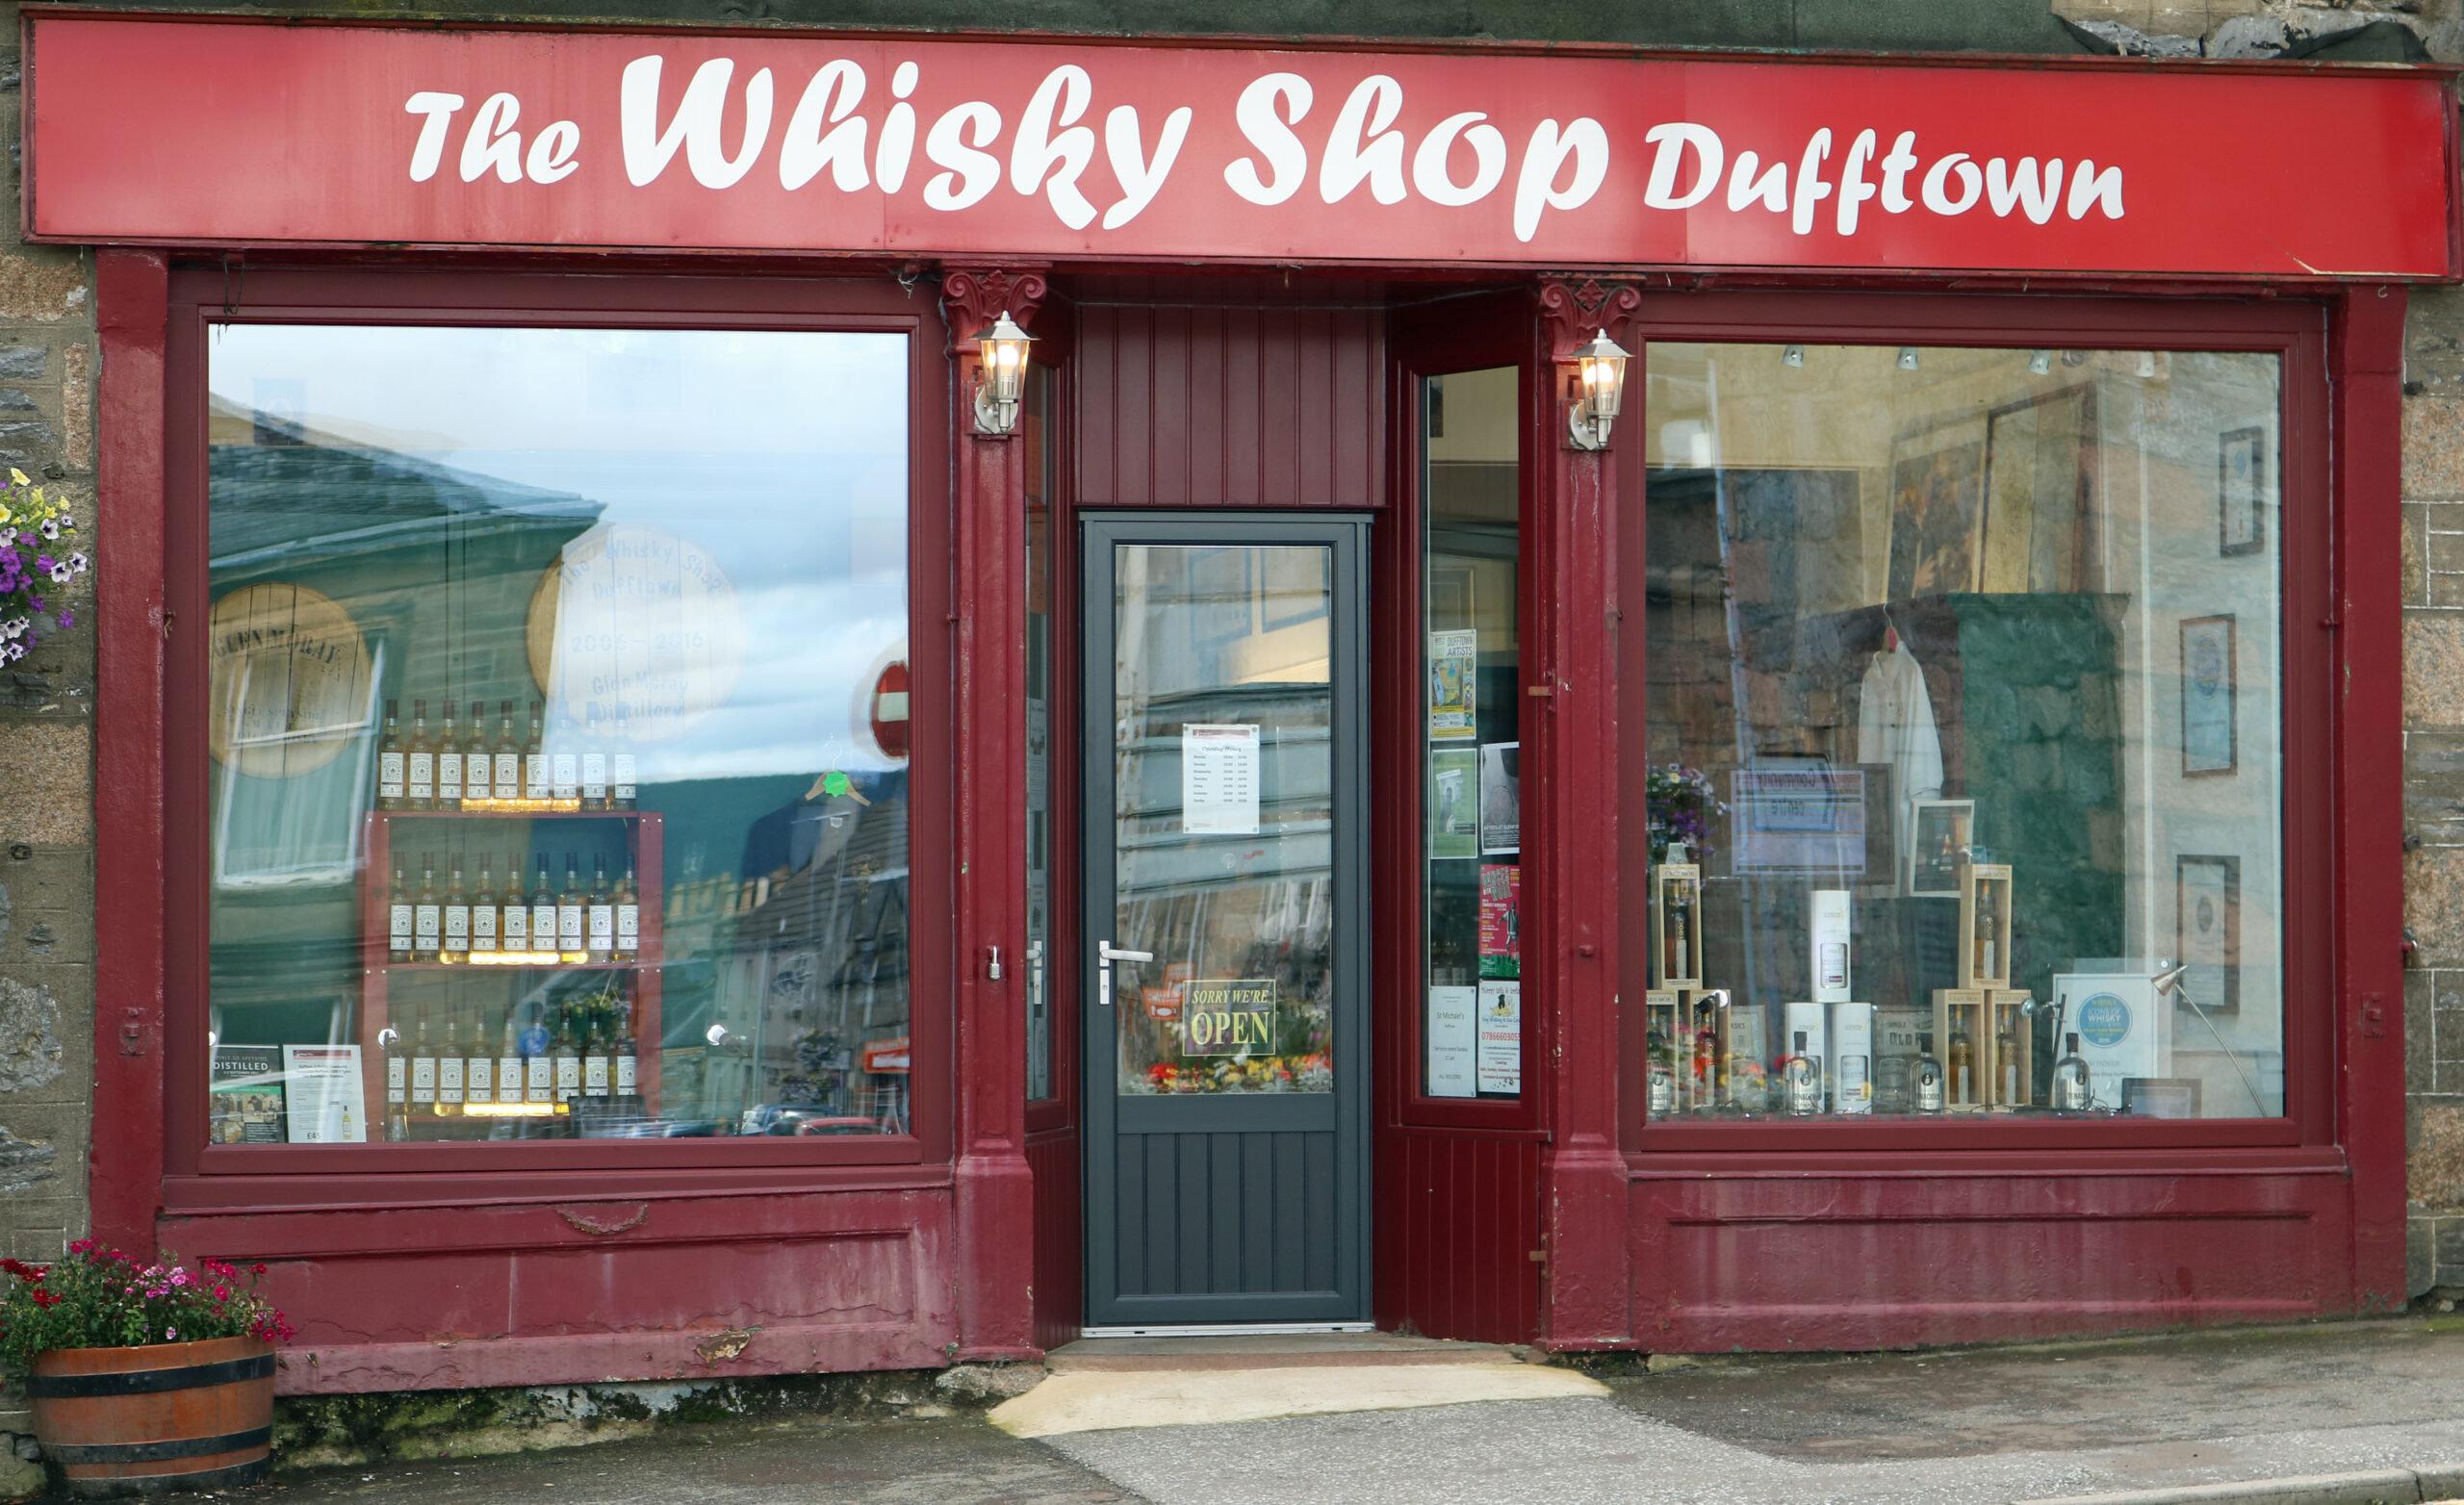 outside the Whisky Shop Dufftown